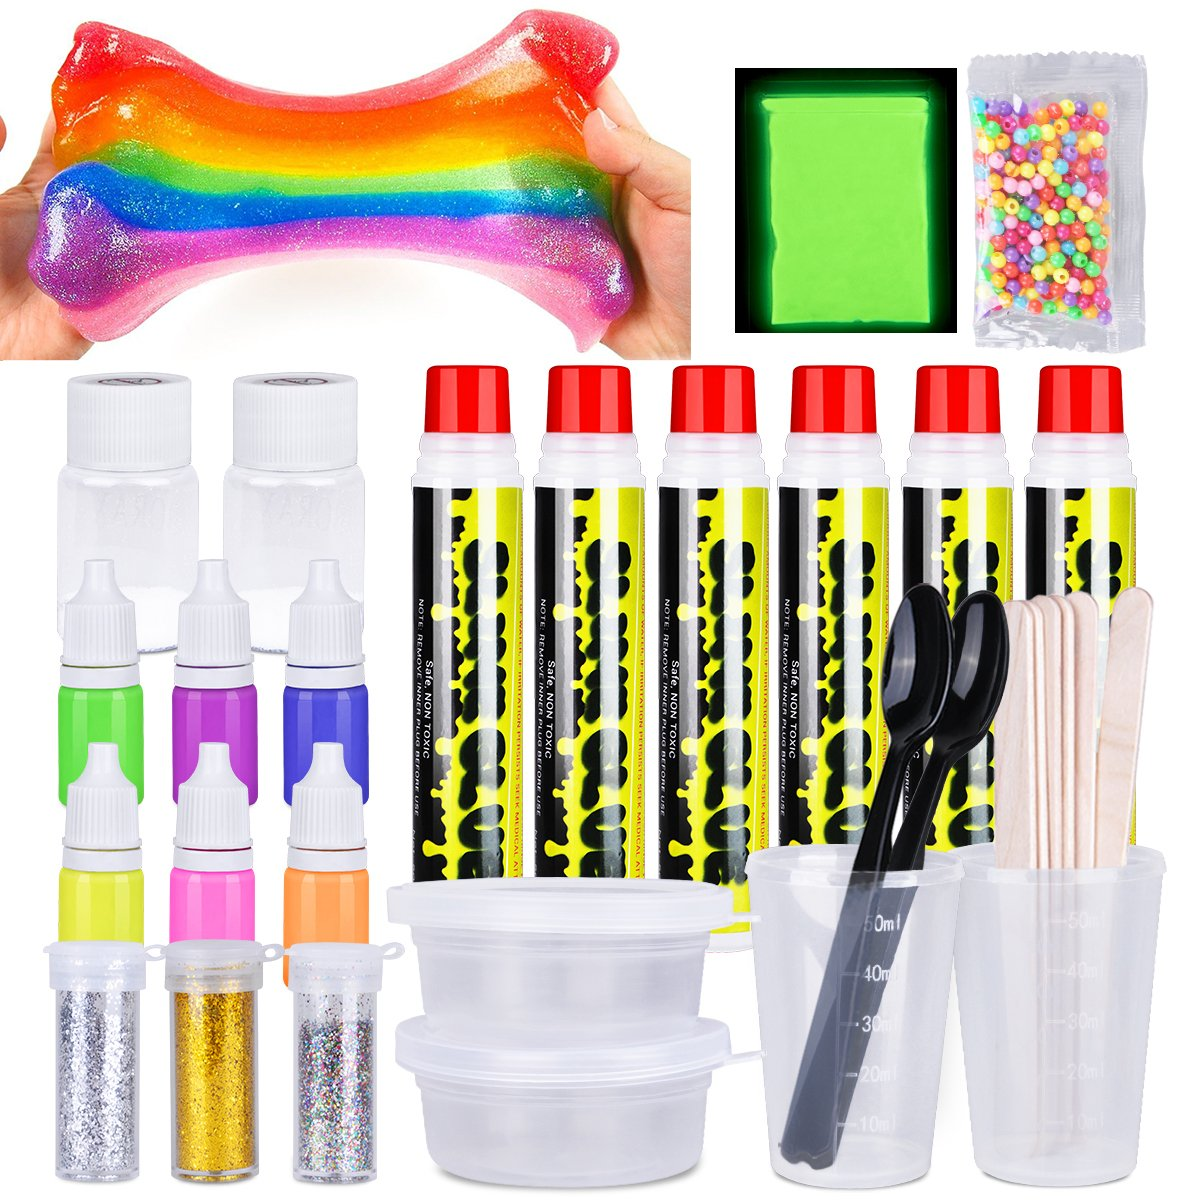 LOYO Slime Kit, 32 Pack DIY Slime Kits to Make Your Own Clear and Glowing Slimes with Glow Powder, Glue, Glitter Shakes, Color Neon Paints, Measuring Cups and Slime Containers (32 Pack DIY Slime Kit) by LOYO